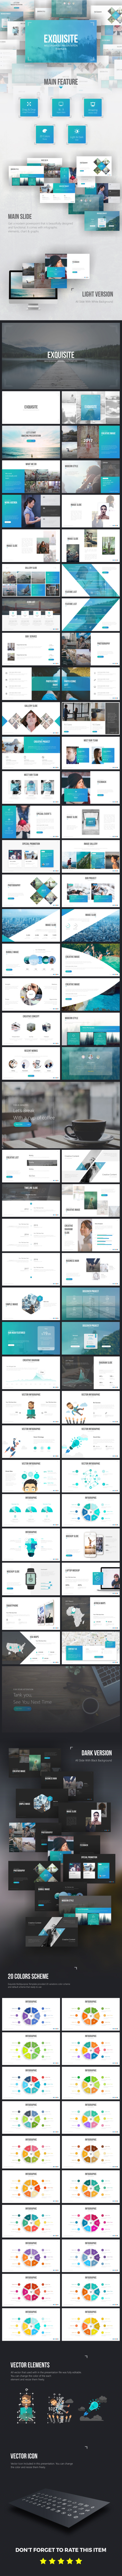 Exquisite Multipurpose Presentation Template - Business PowerPoint Templates